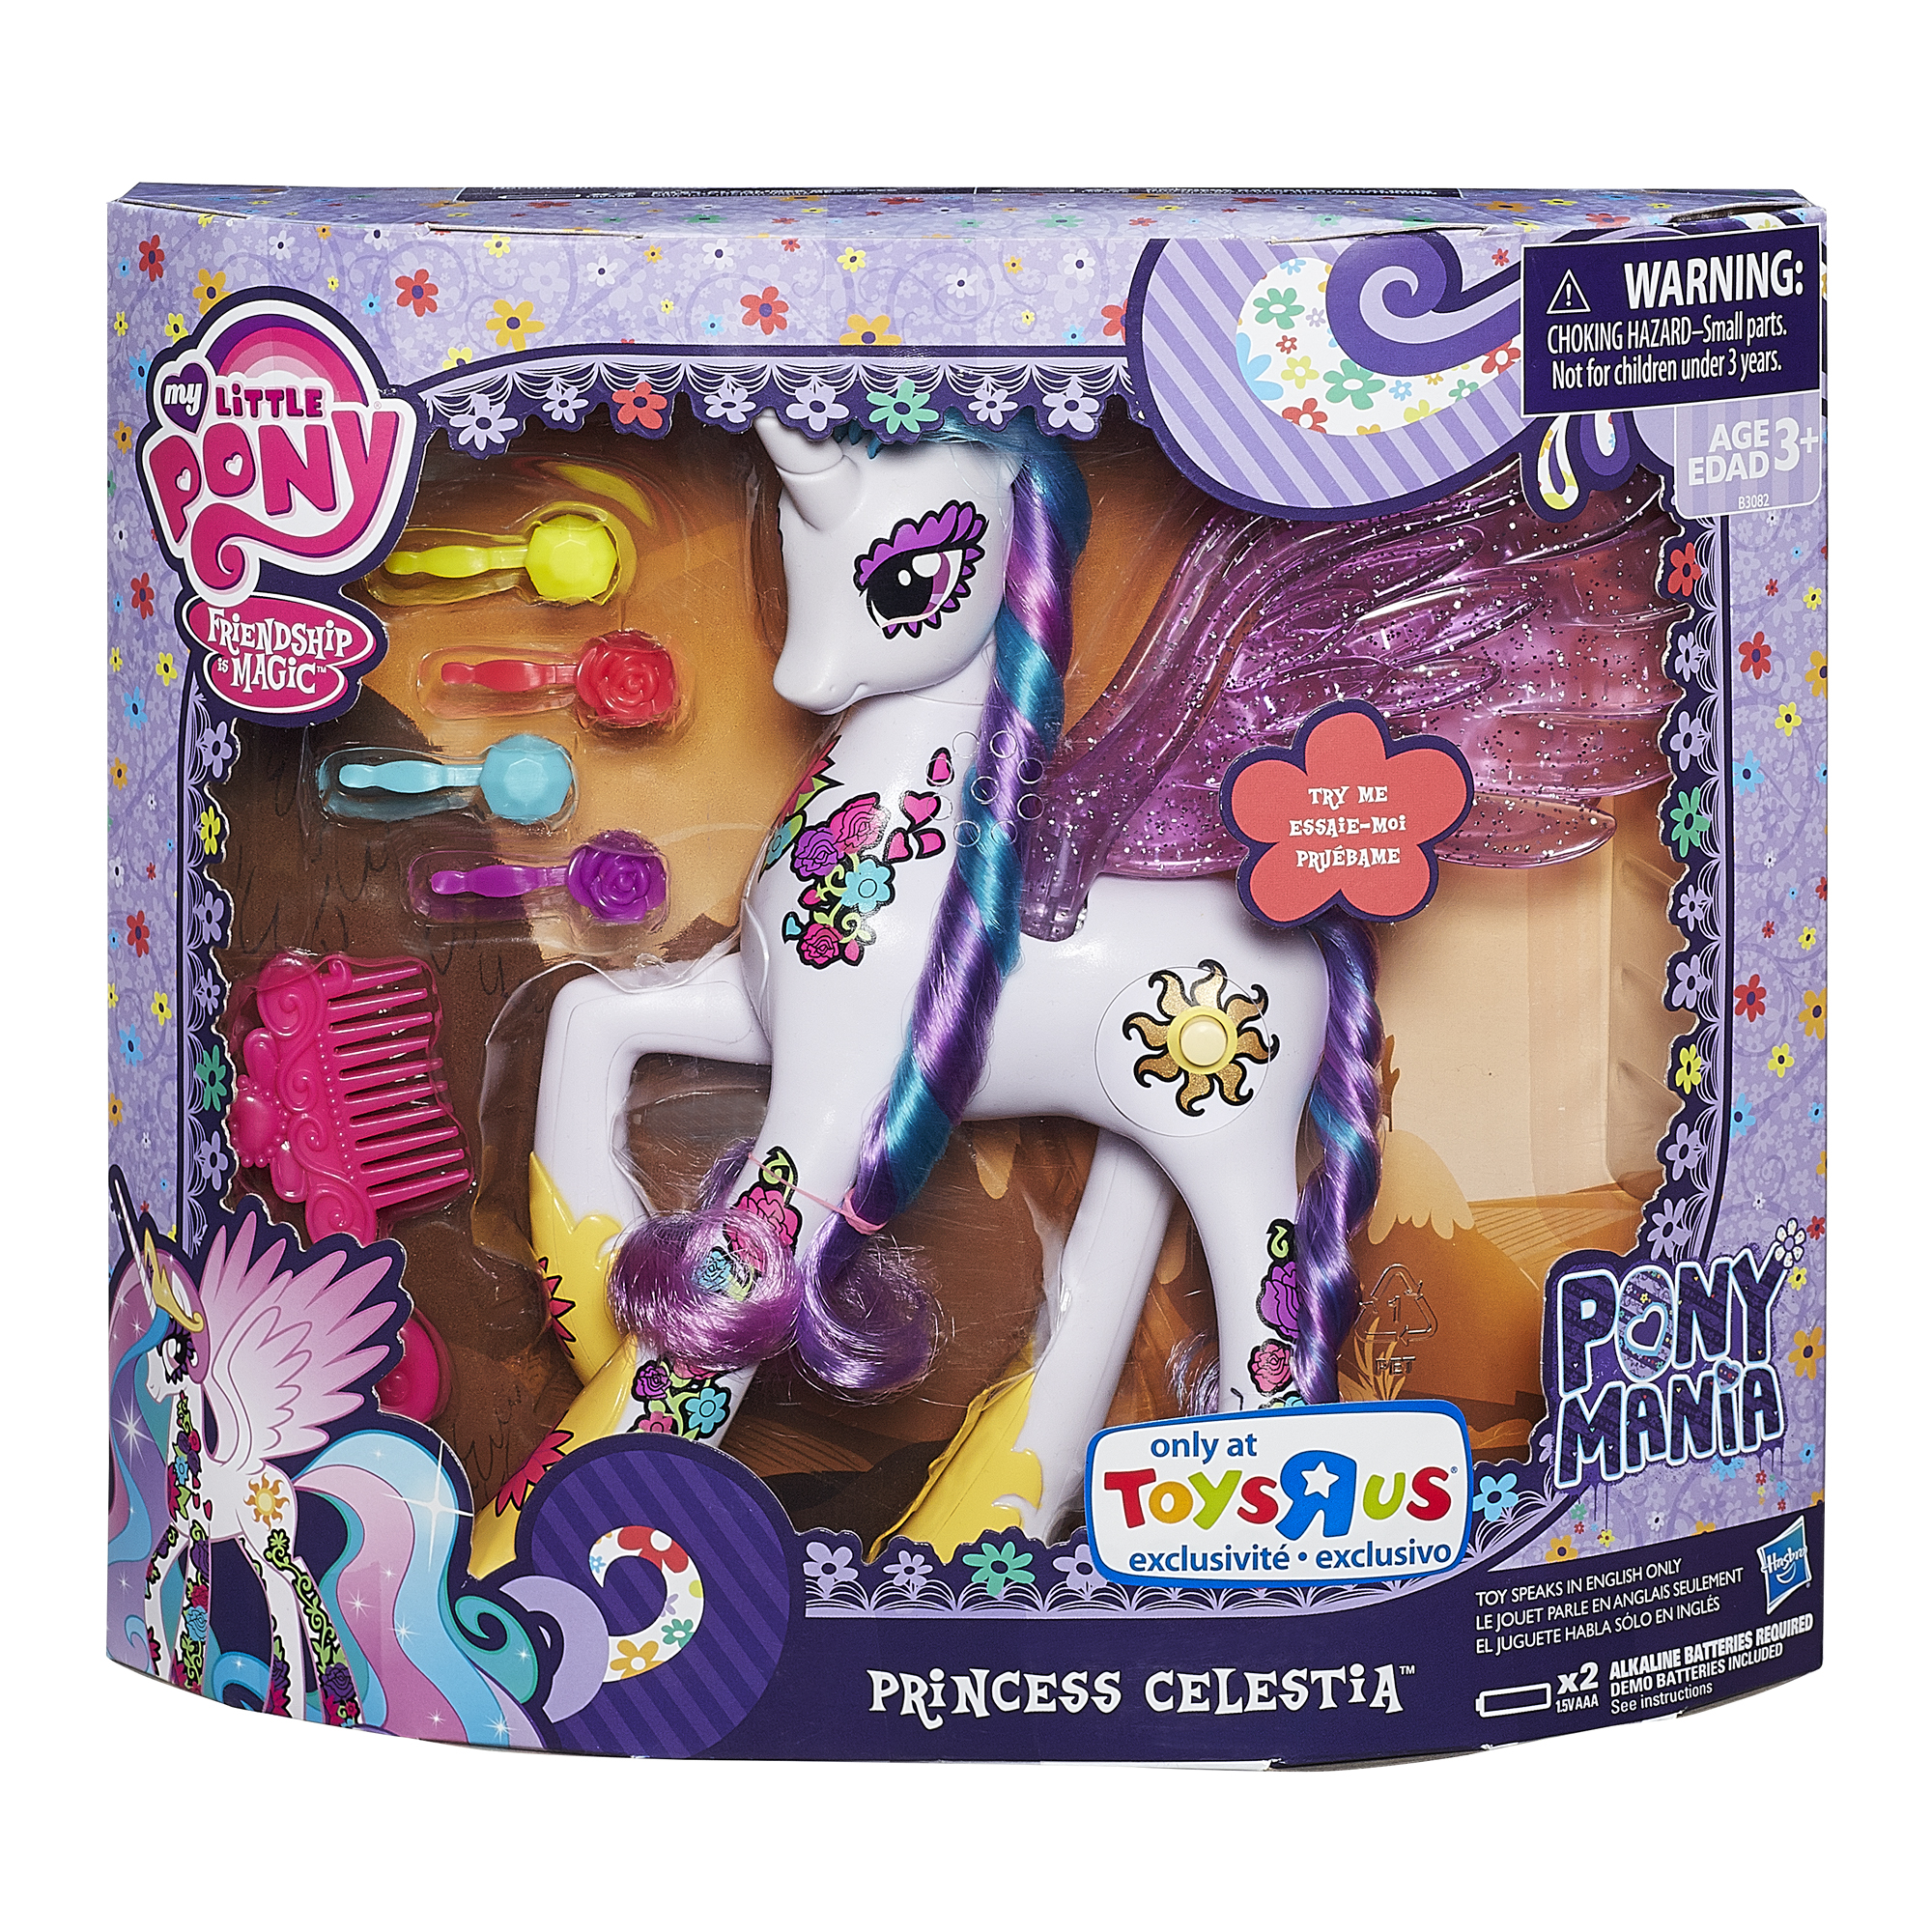 mlp-princess-celestia-in-package--141325